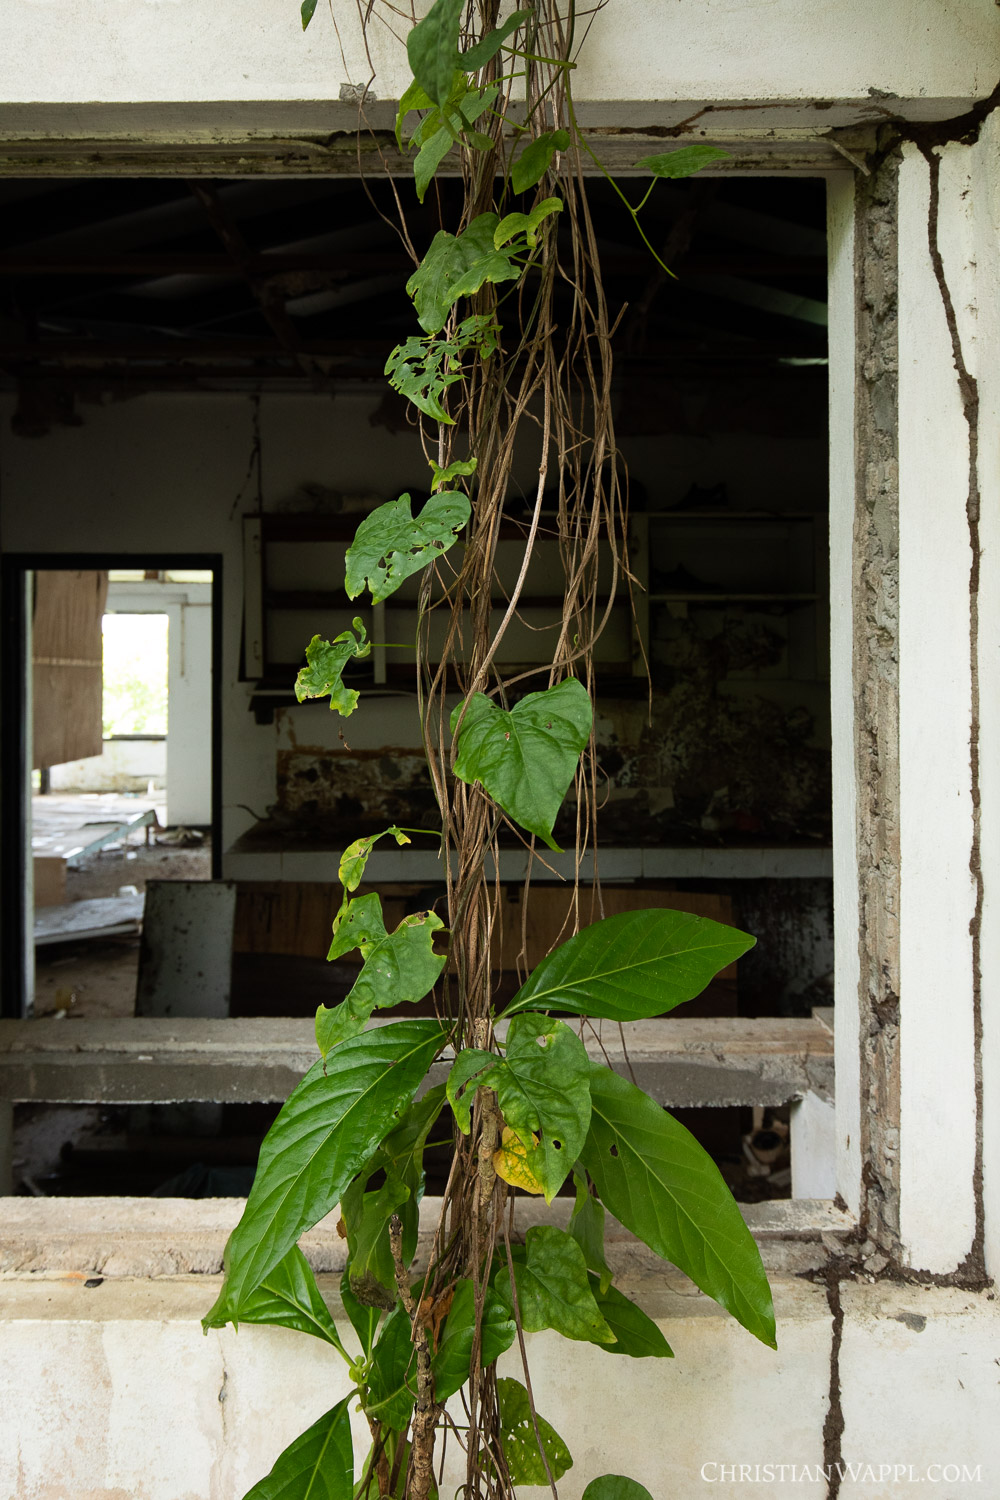 Vines growing in front of a window